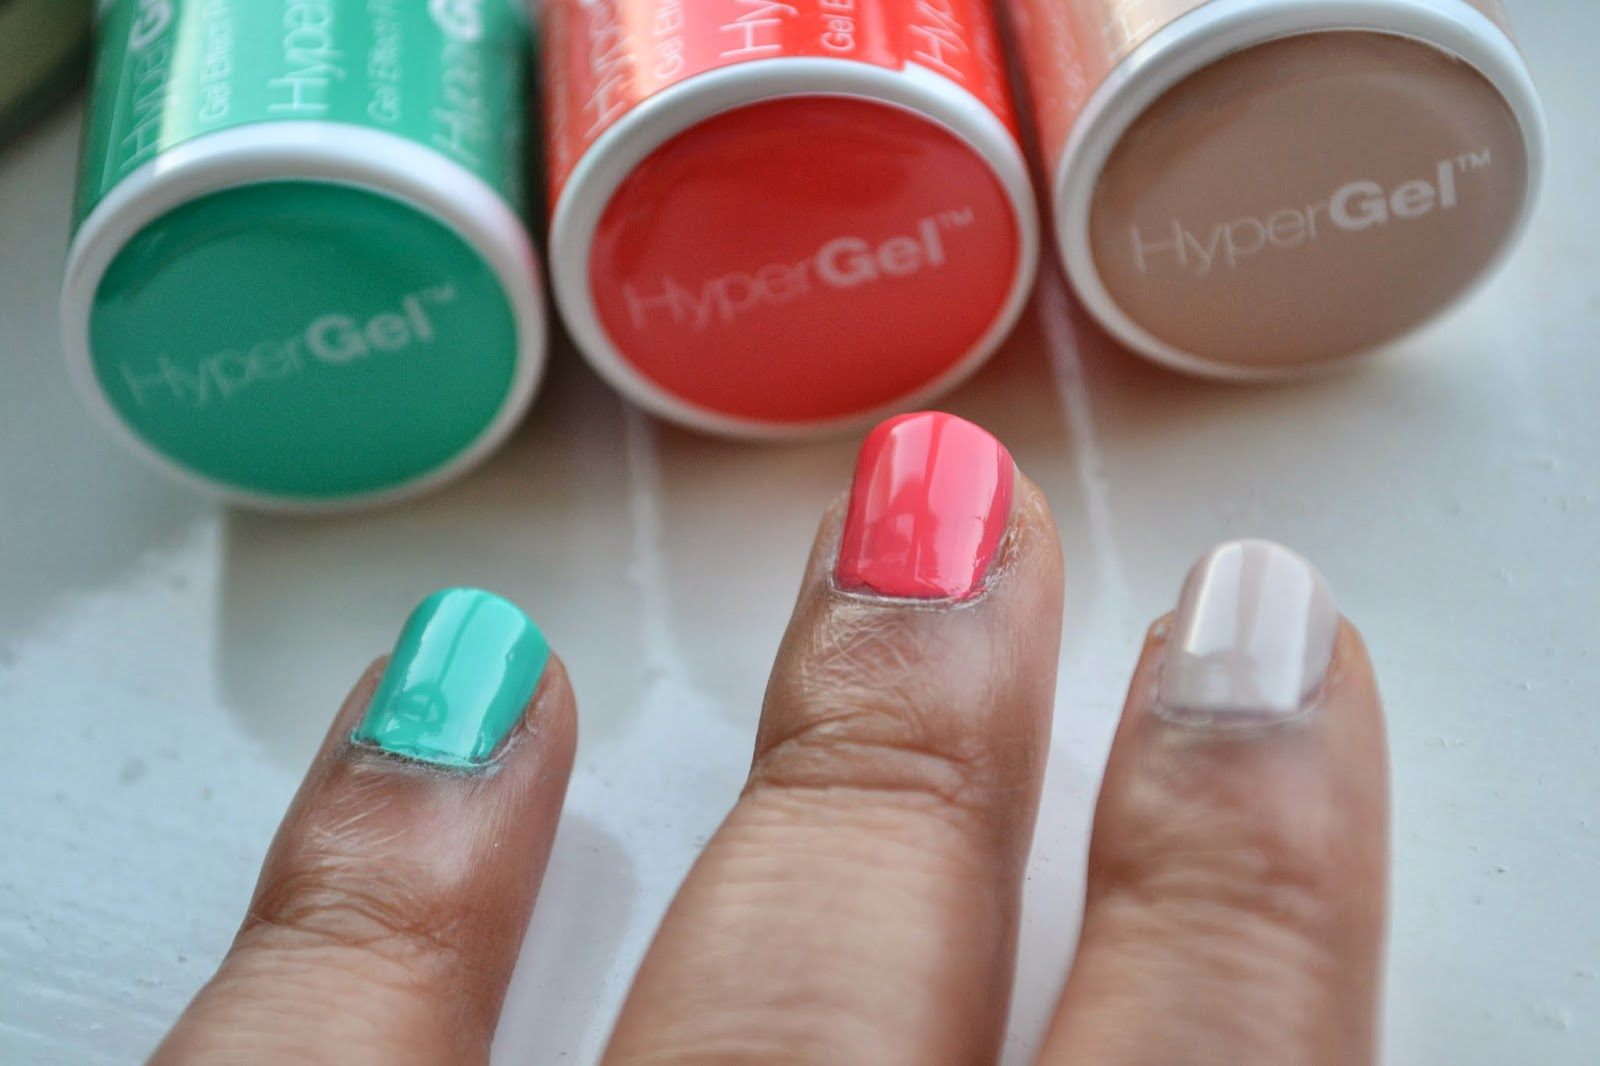 Models Own Hypergel Nail Polish Naked Glow, Coral Glaze, Turquoise Gloss Swatch - Beauty by Eff